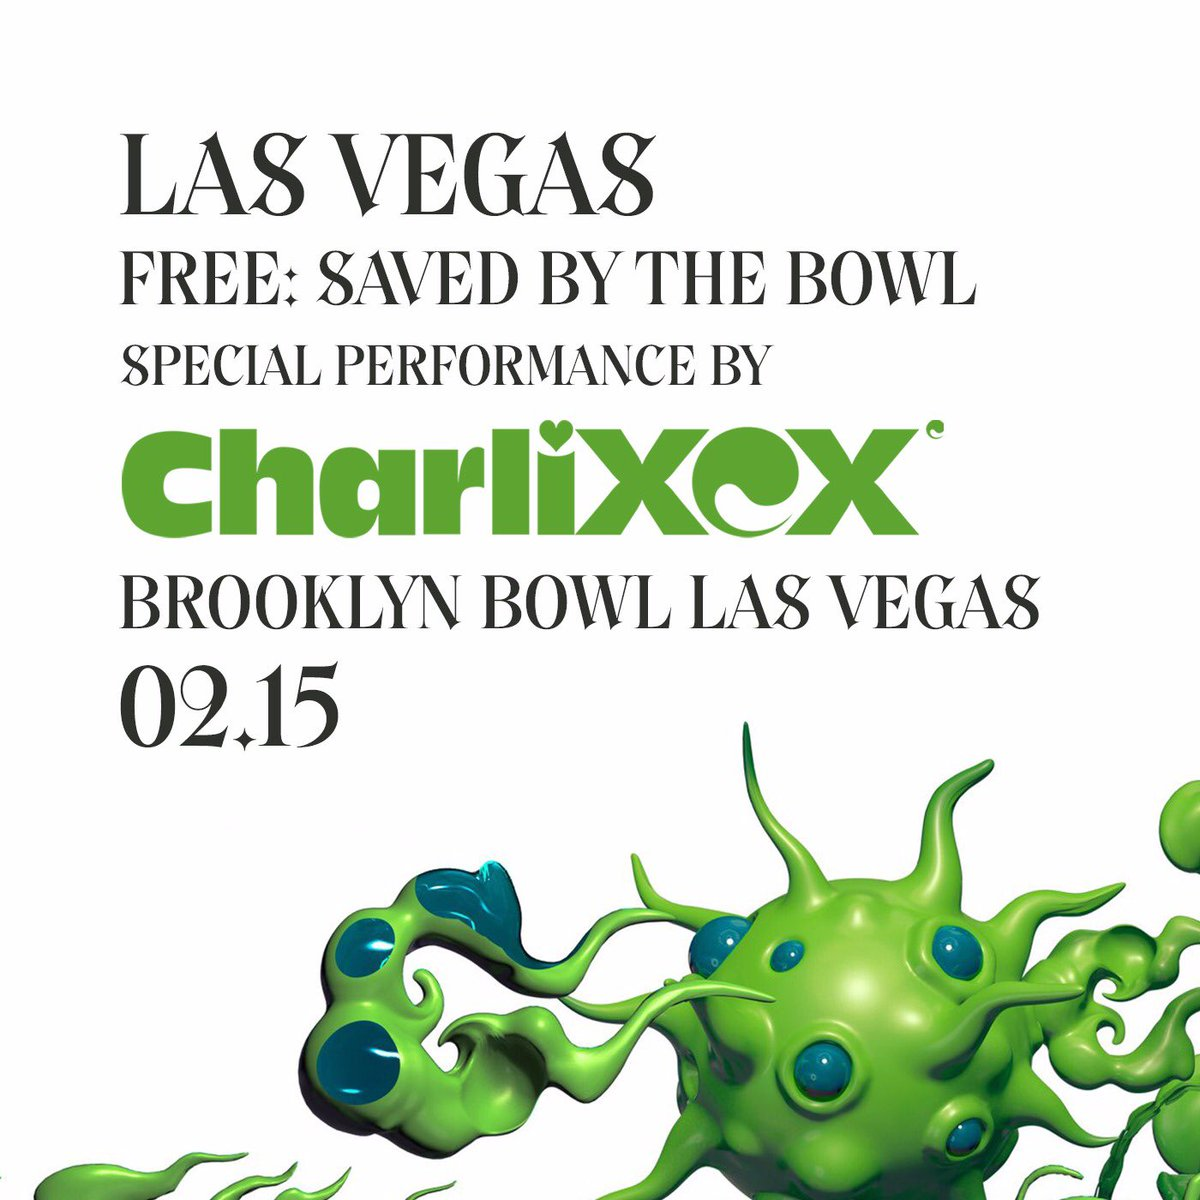 💗💕 VEGAS ANGELS!!! FREE SHOW TONIGHT AT BROOKLYN BOWL!!! FIRST COME FIRST SERVED!!!! ASK FOR TOMMY ON THE DOOR!!! LETS PARTY!!!! 💕💗